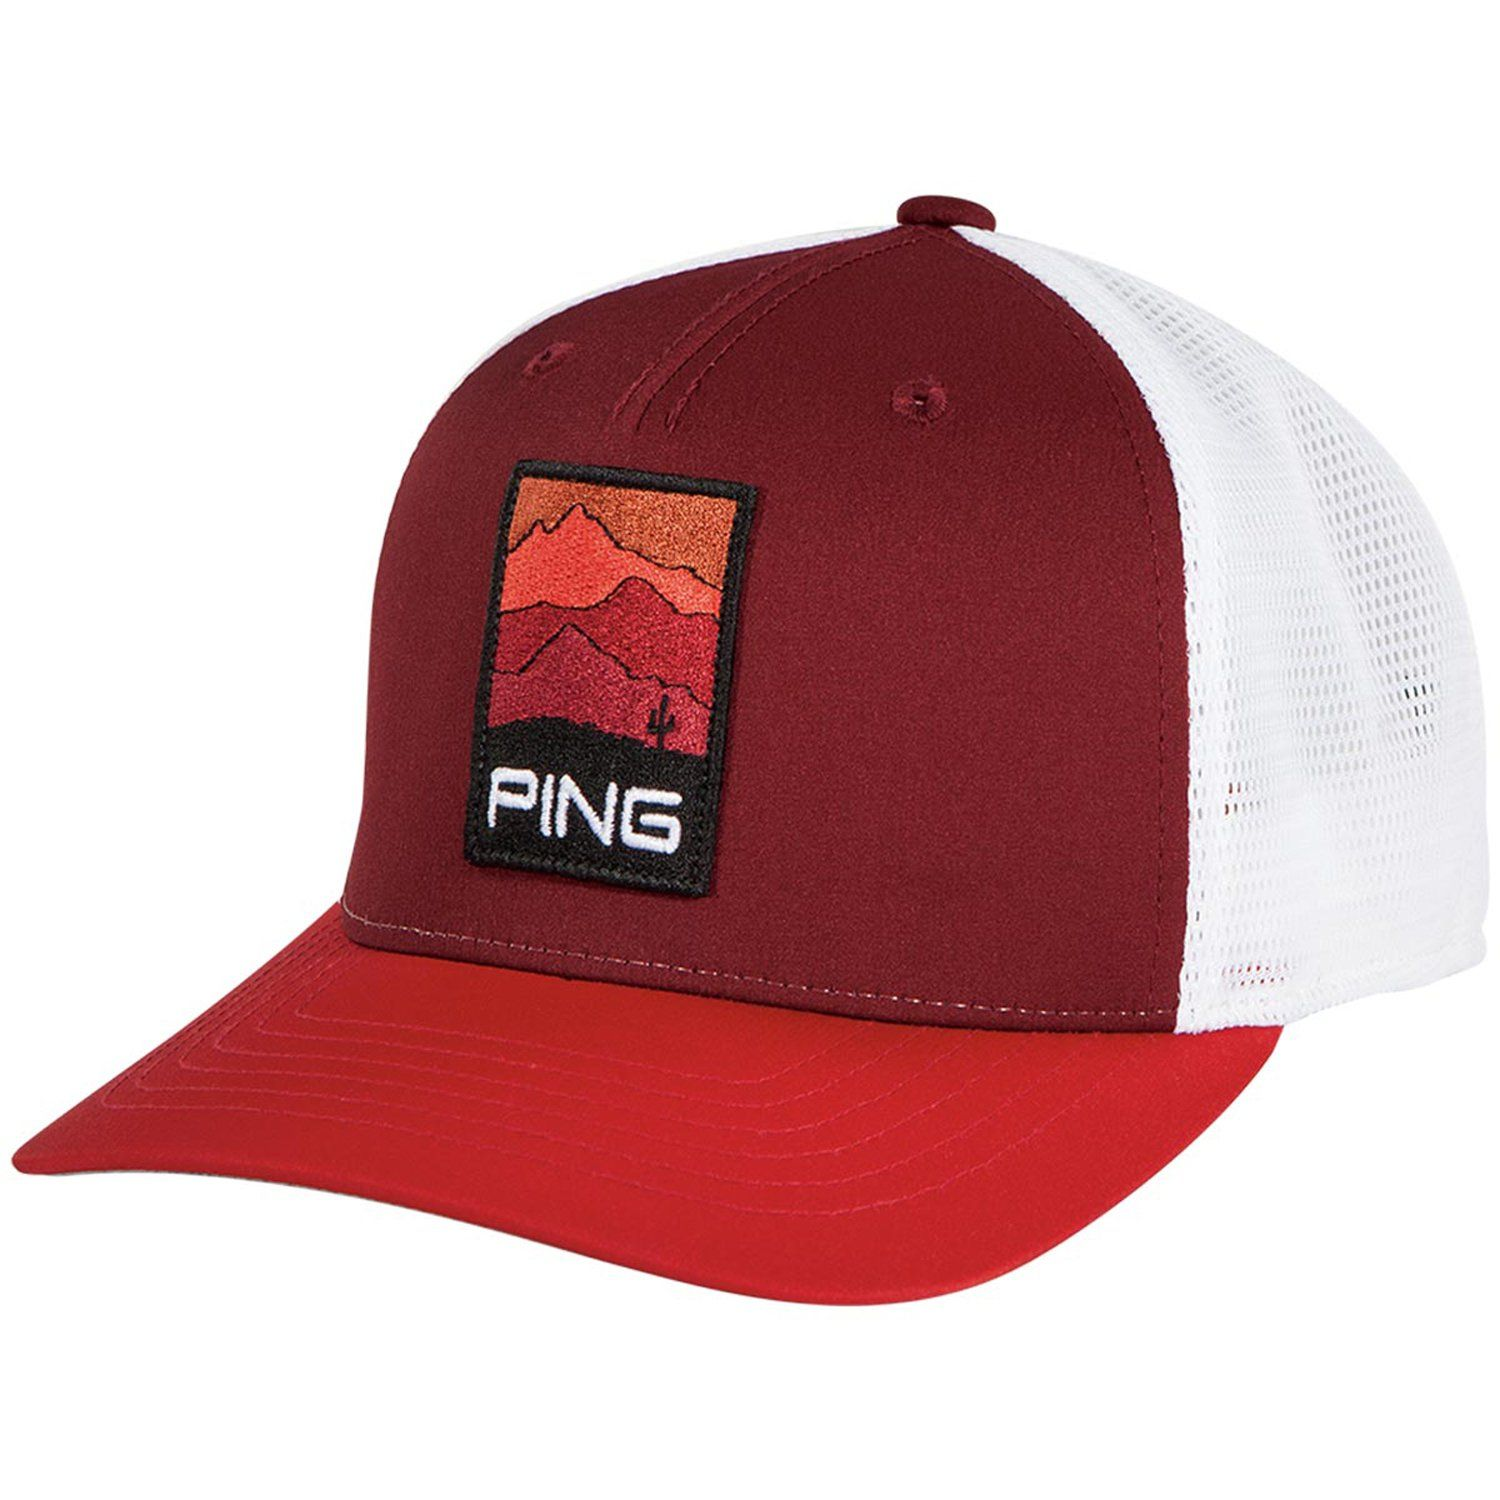 bee70e0be48 Men golf clothing ping mountain patch adjustable hat cap jpg 1500x1500 Ping  hats for men